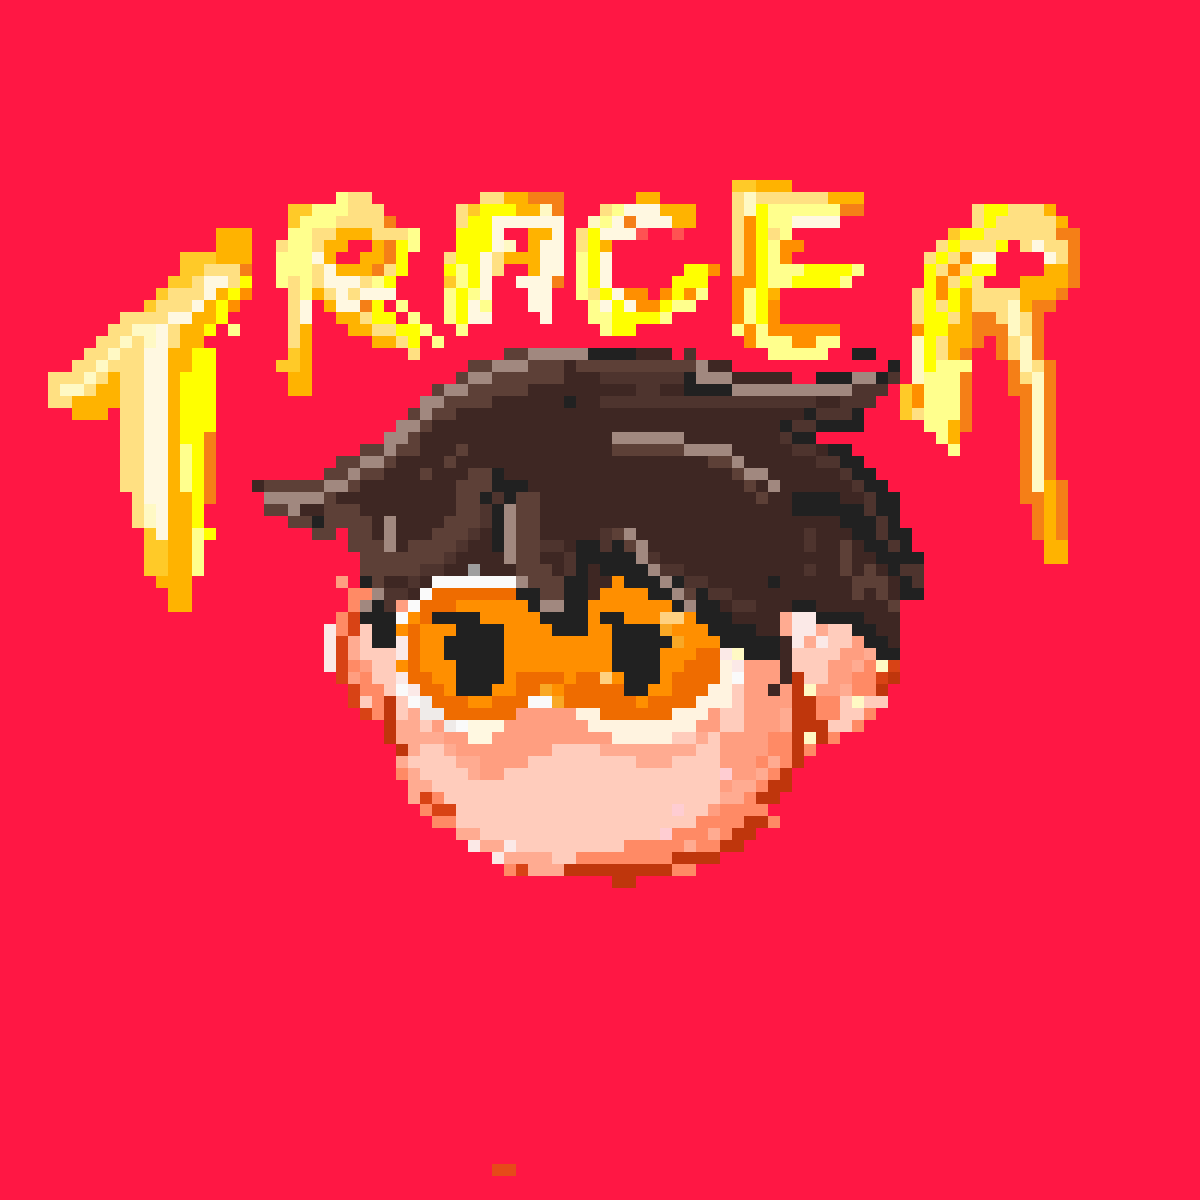 tracer by nyree20